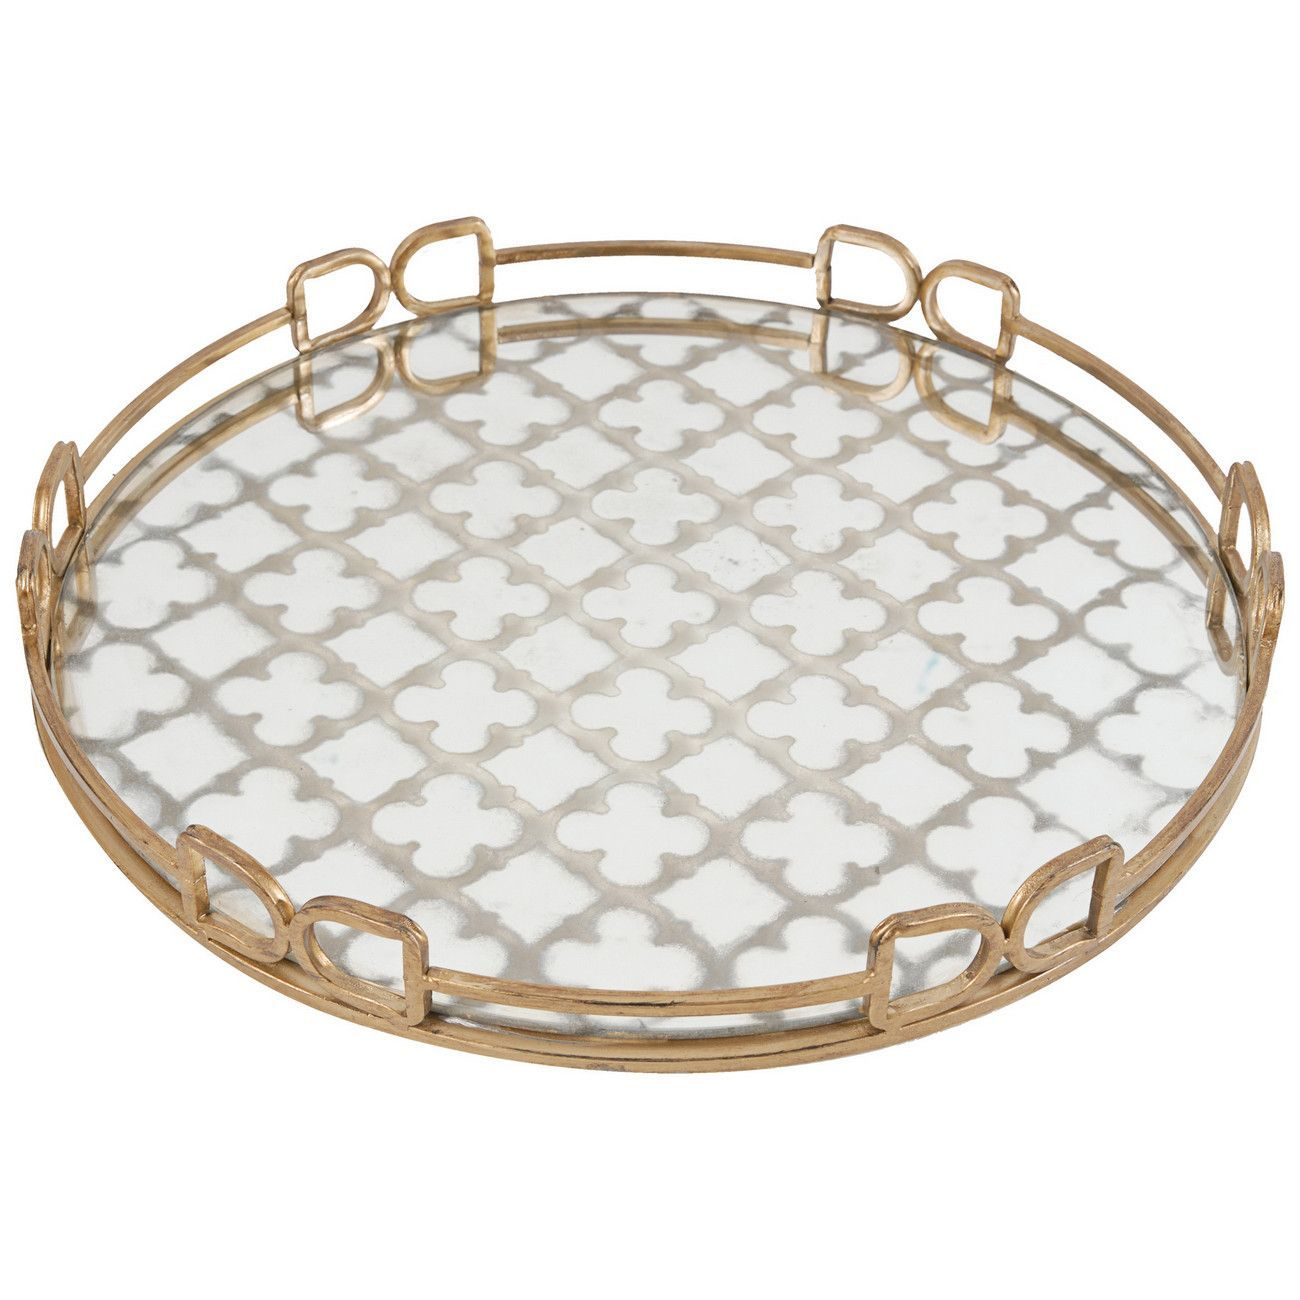 Decorative Tray Unique Table Tray  Home Decor  Pinterest  Table Tray Trays And Coffee Inspiration